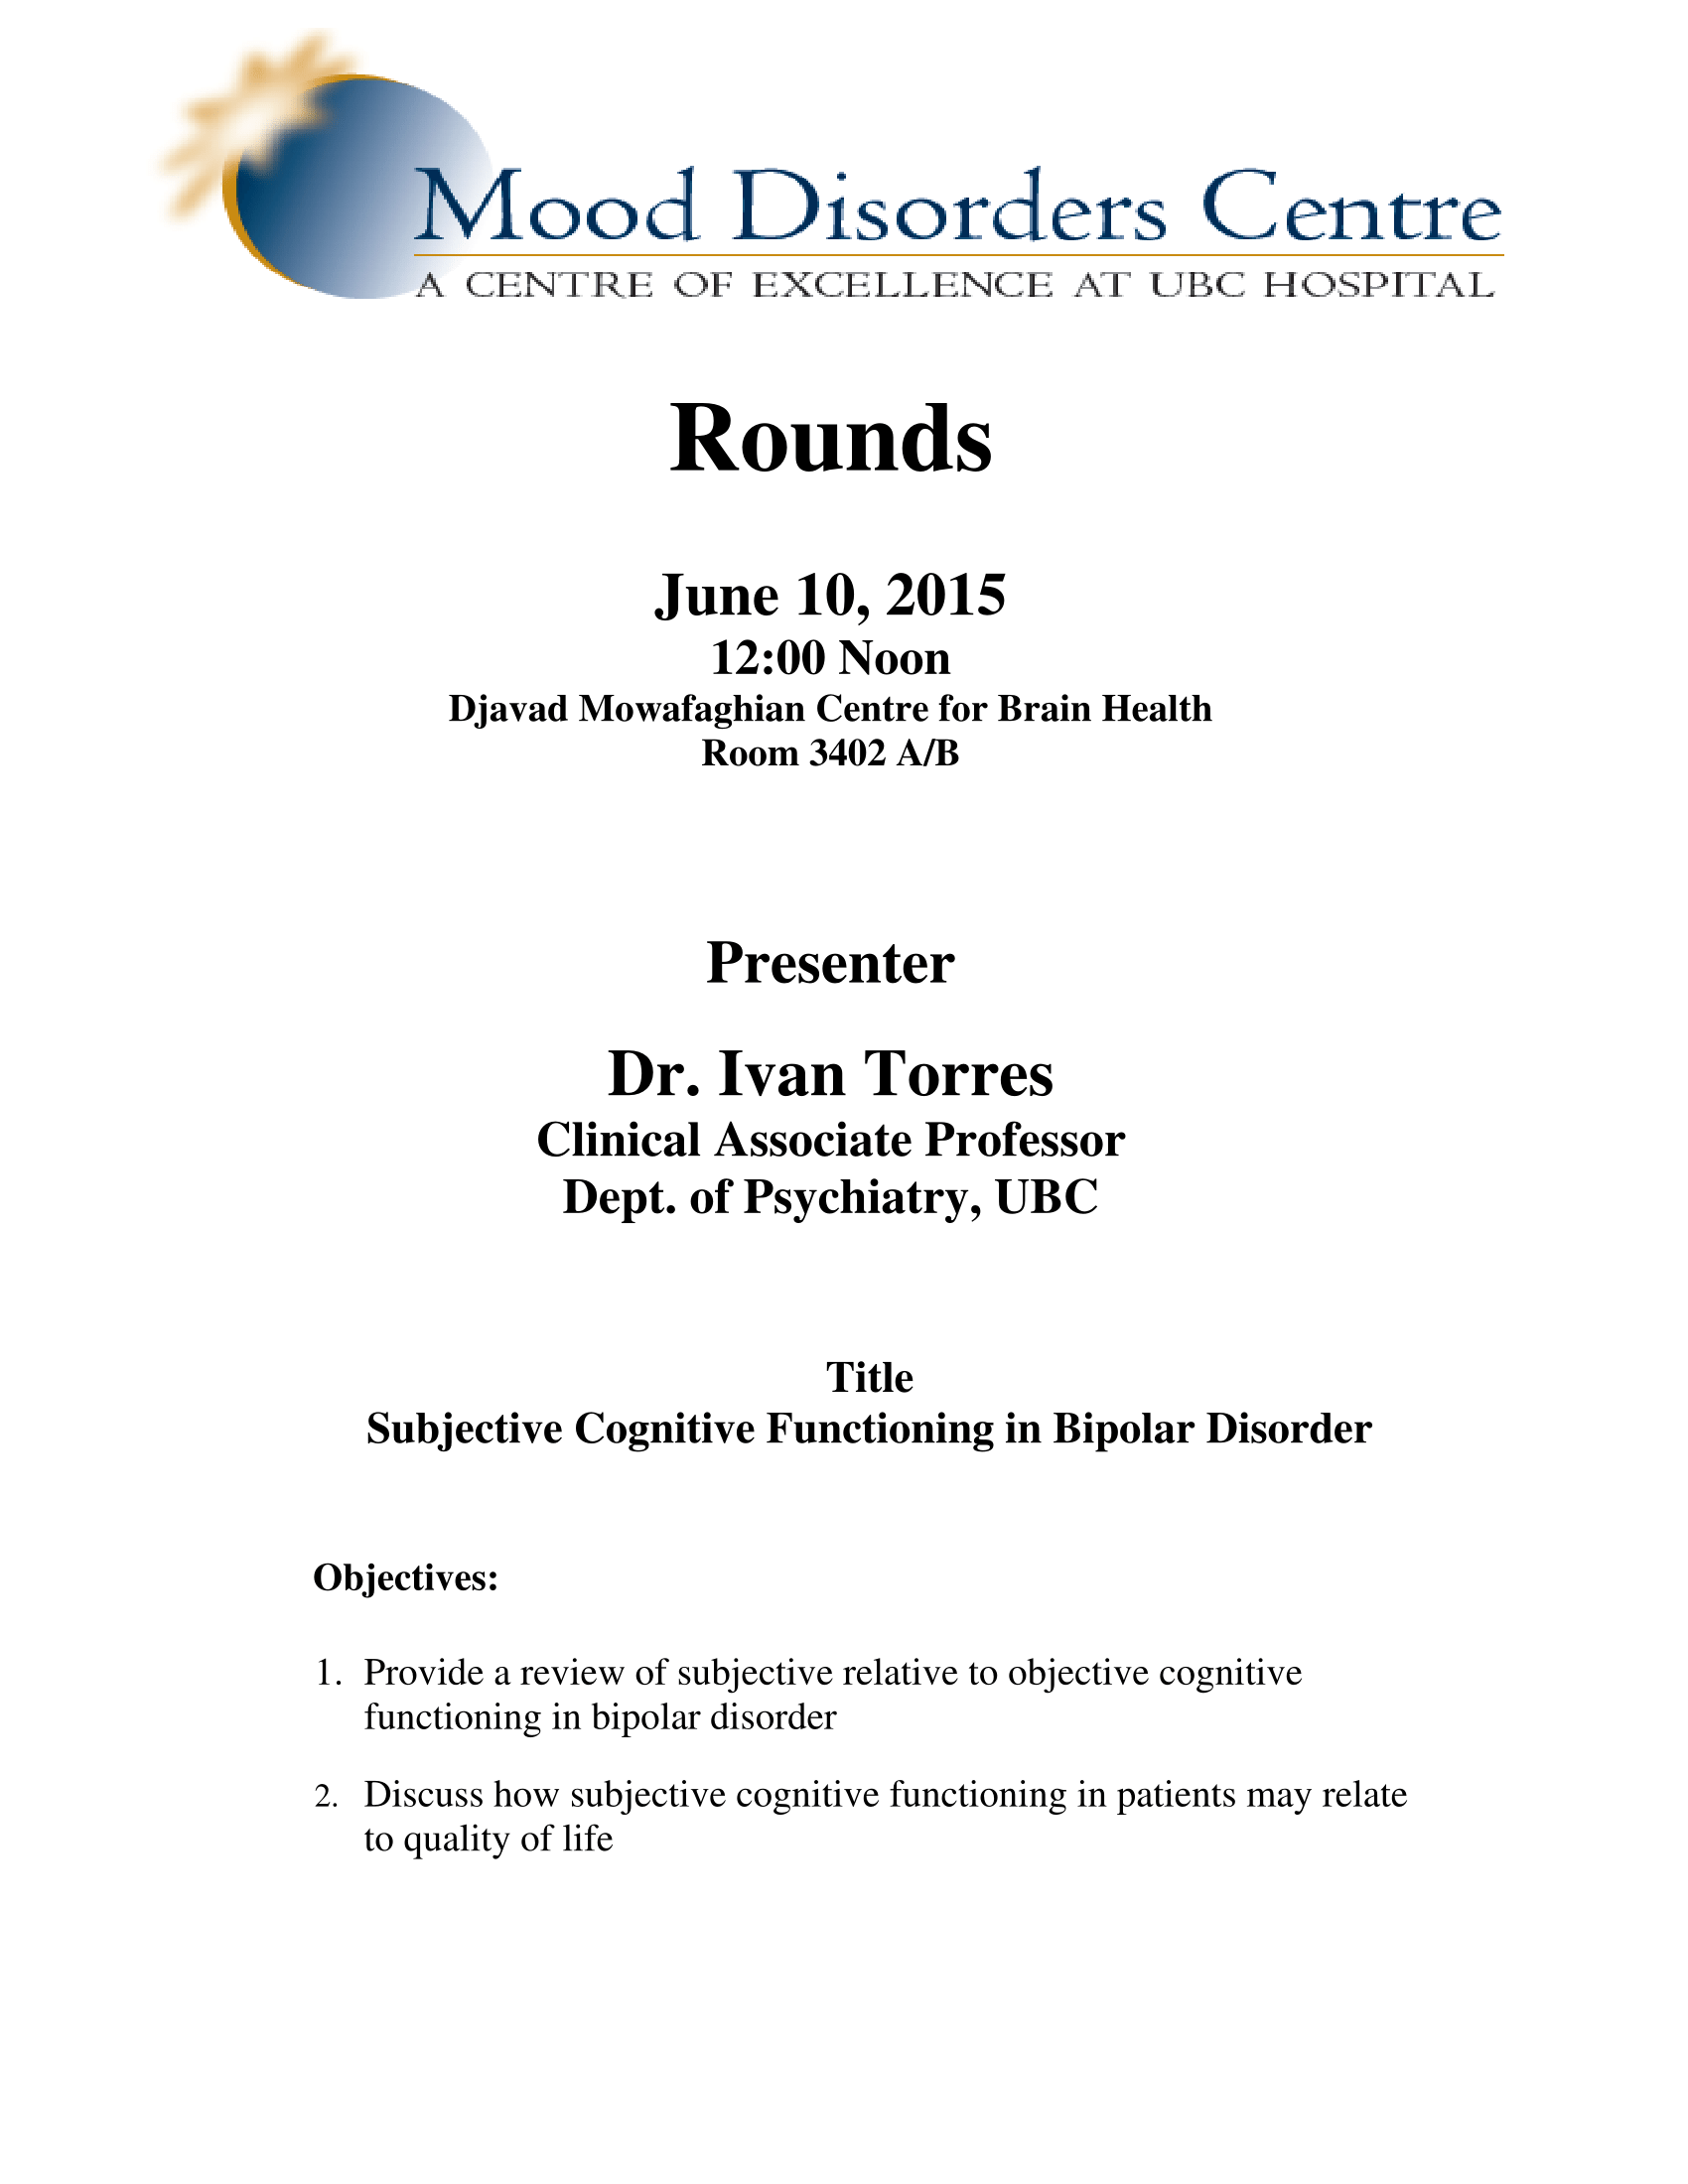 MDC Rounds June 10 2015-1